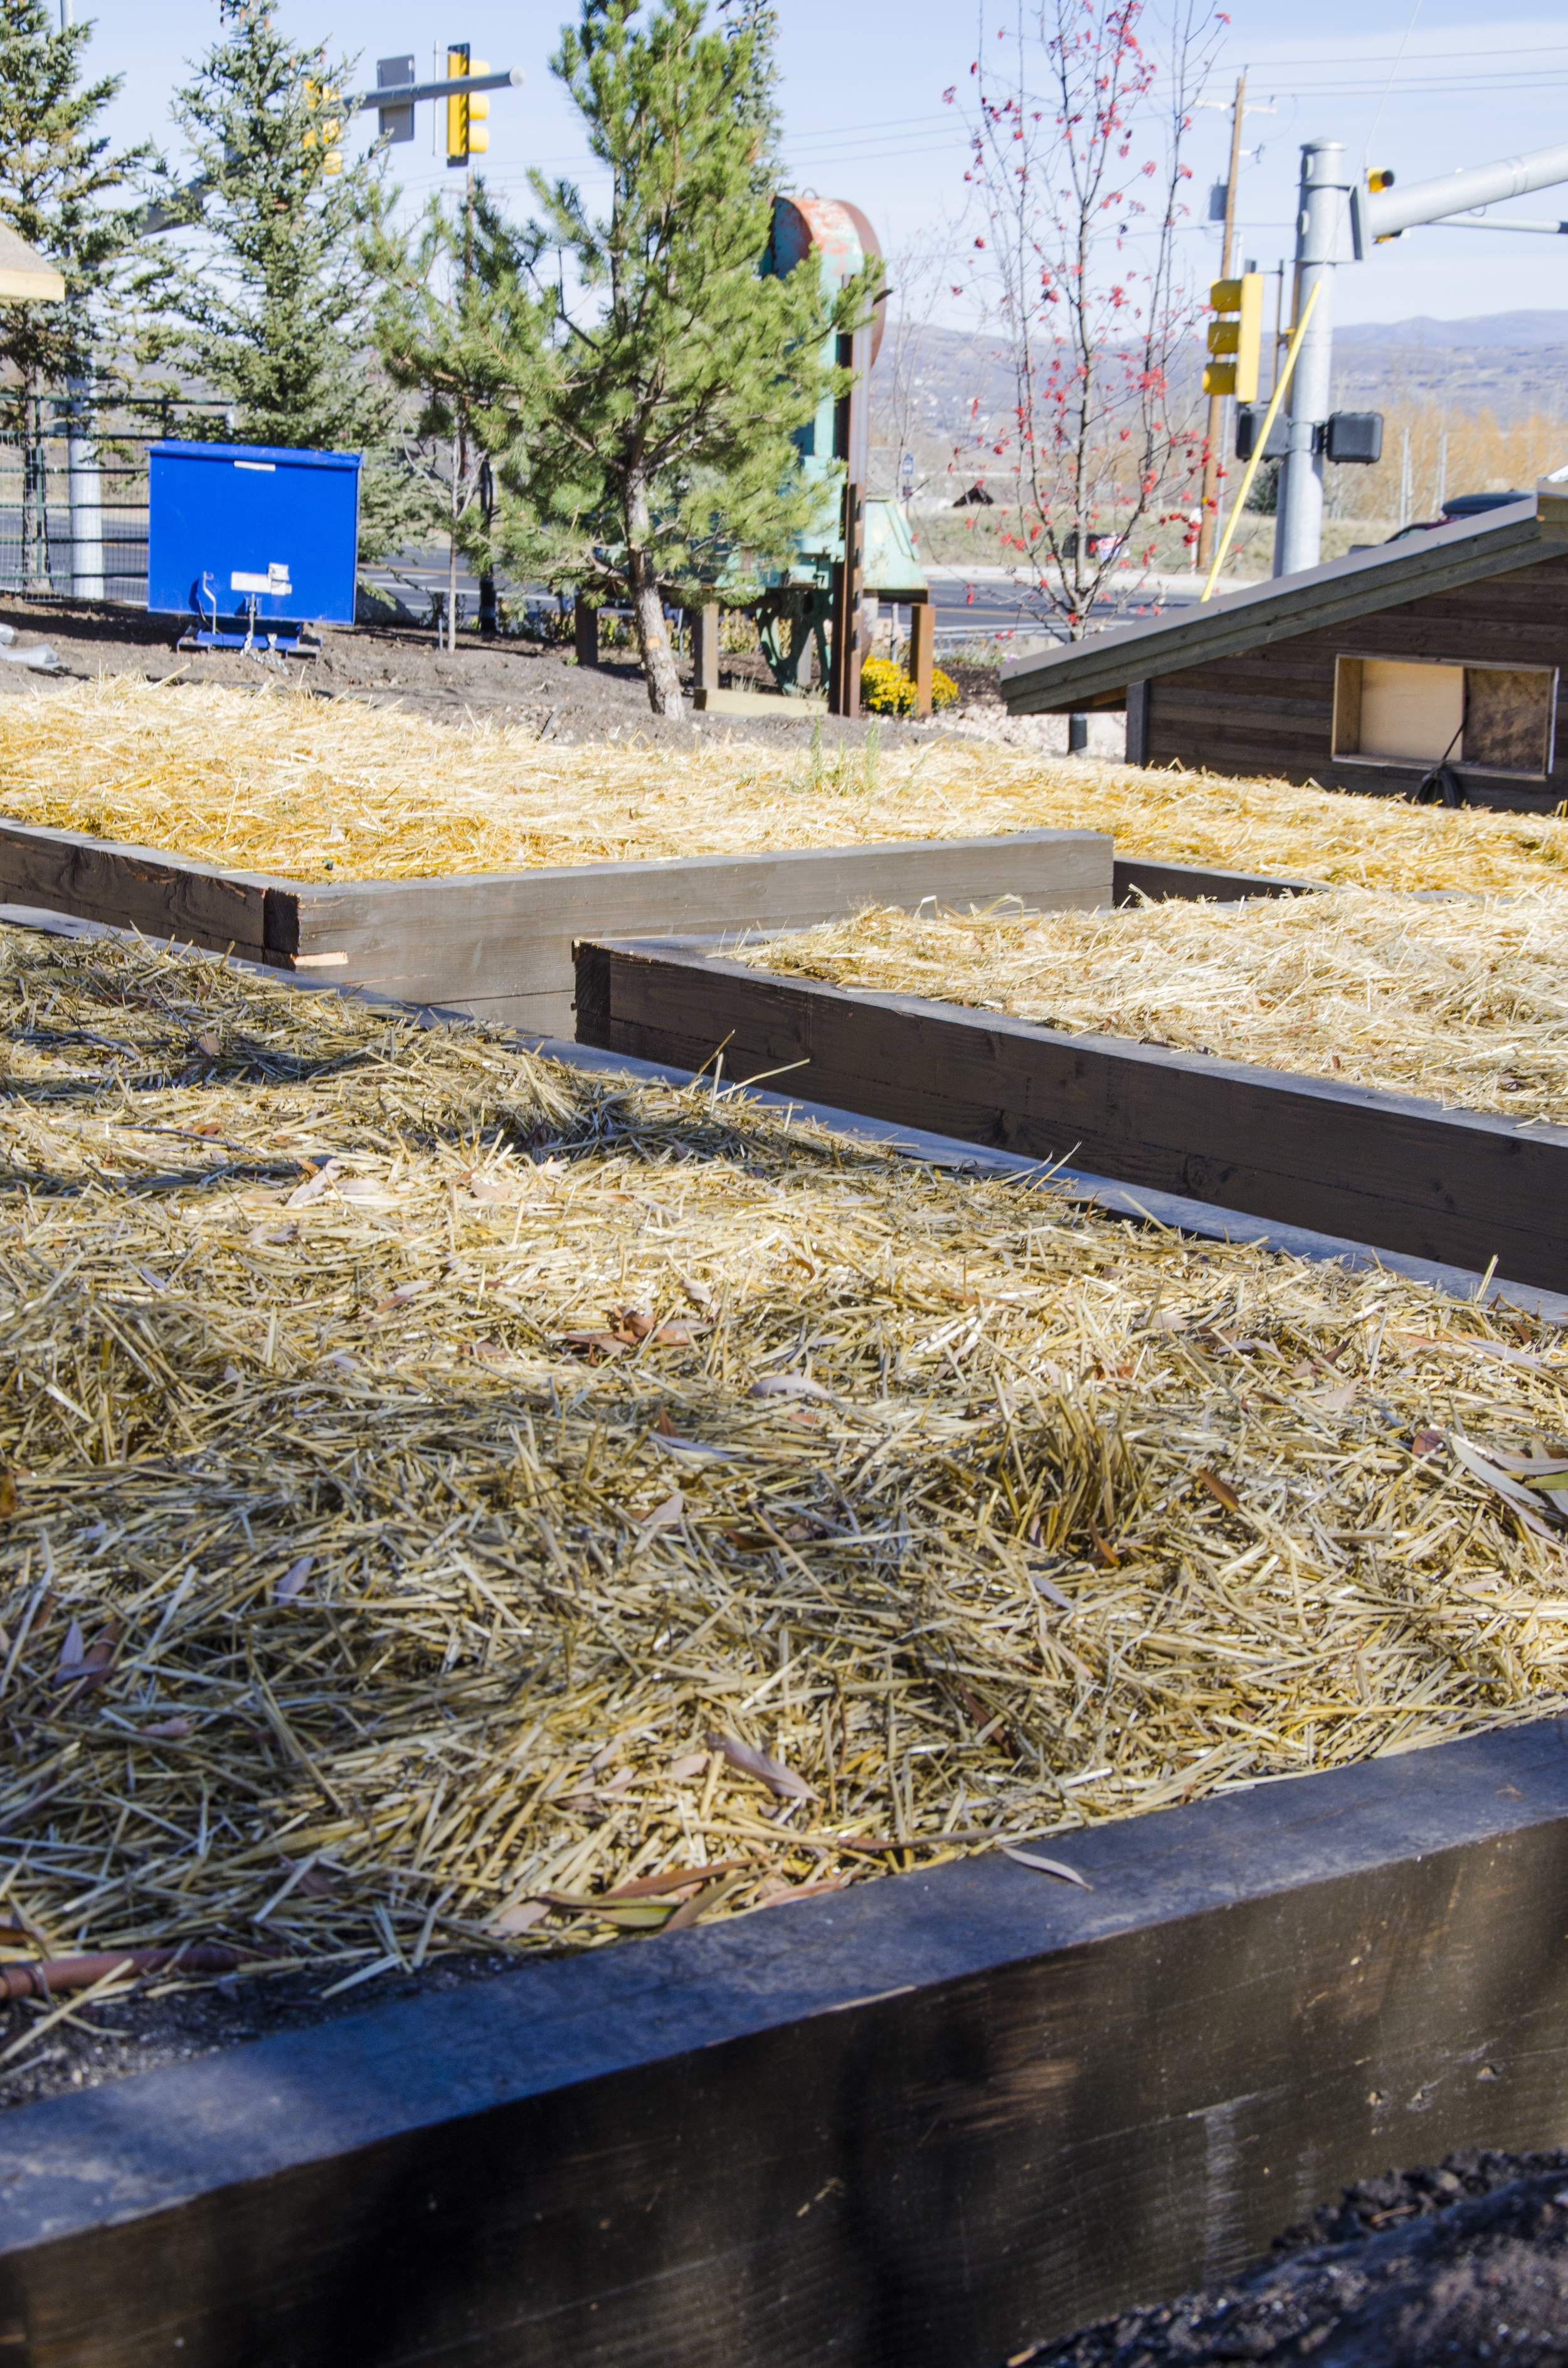 The garden beds have been covered with straw to protect them over the Winter.